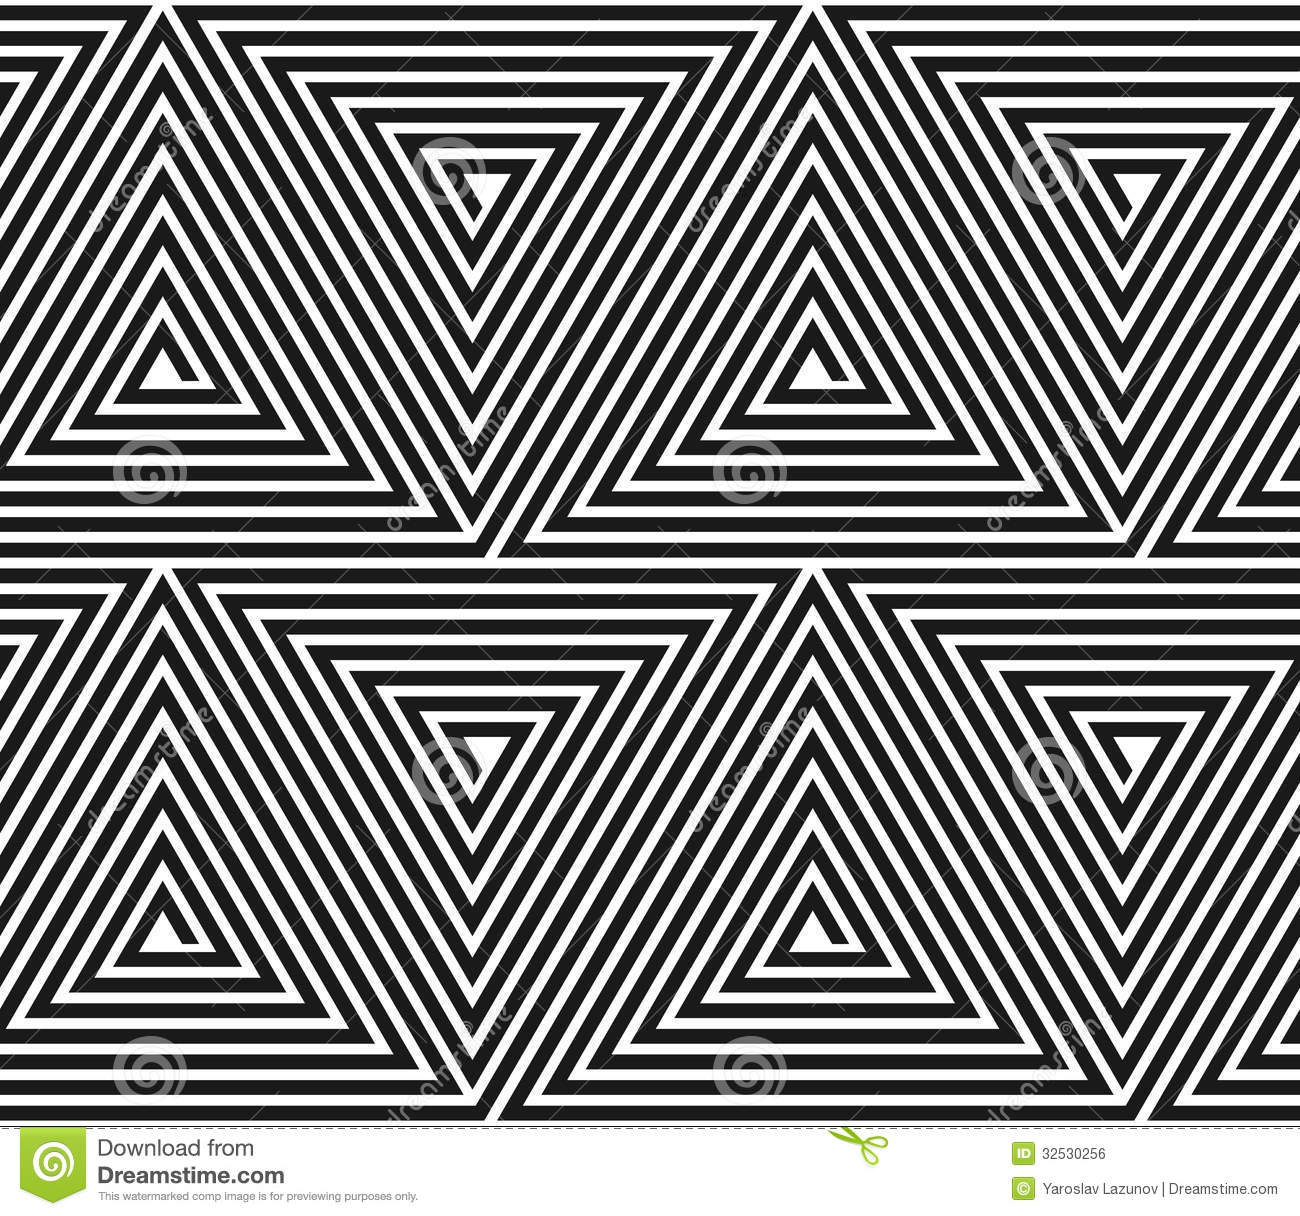 Vector Triangular Geometric Pattern. Royalty Free Stock Image ...